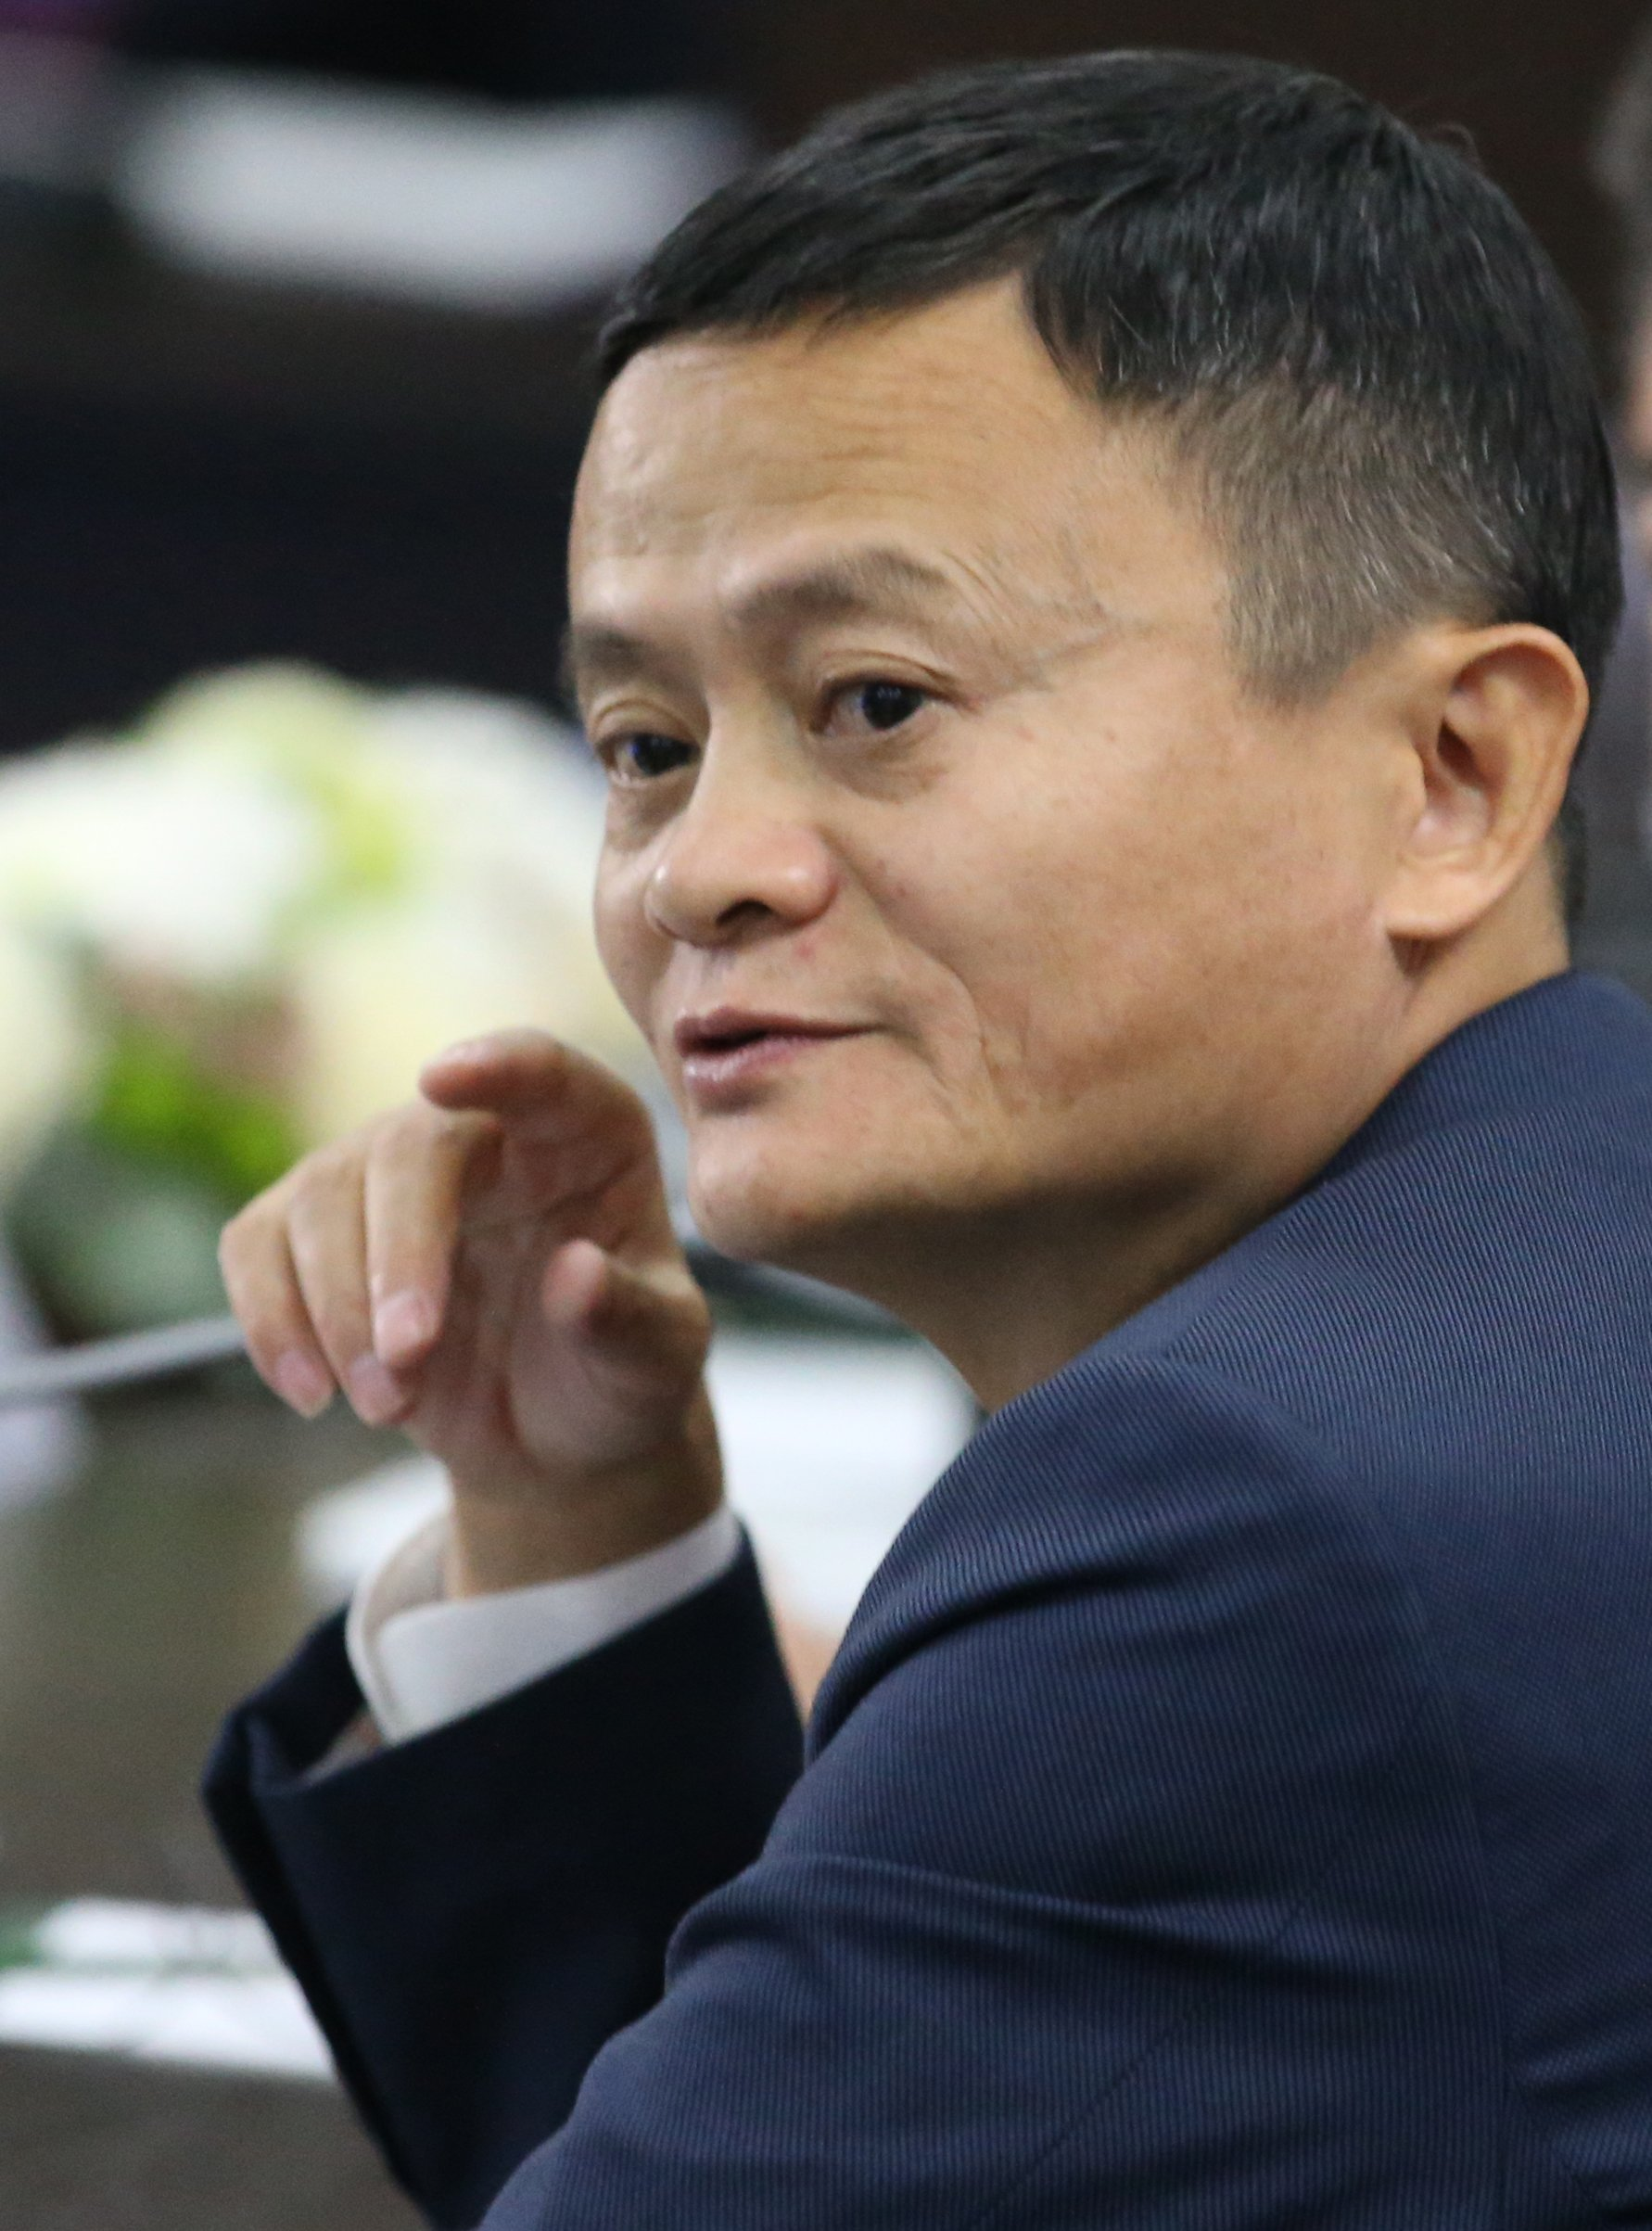 Alibaba's Chairman Jack Ma attending the Russian-Chinese meeting at the Eastern Economic Forum in Vadivostok, Russia | Photo: Getty Images